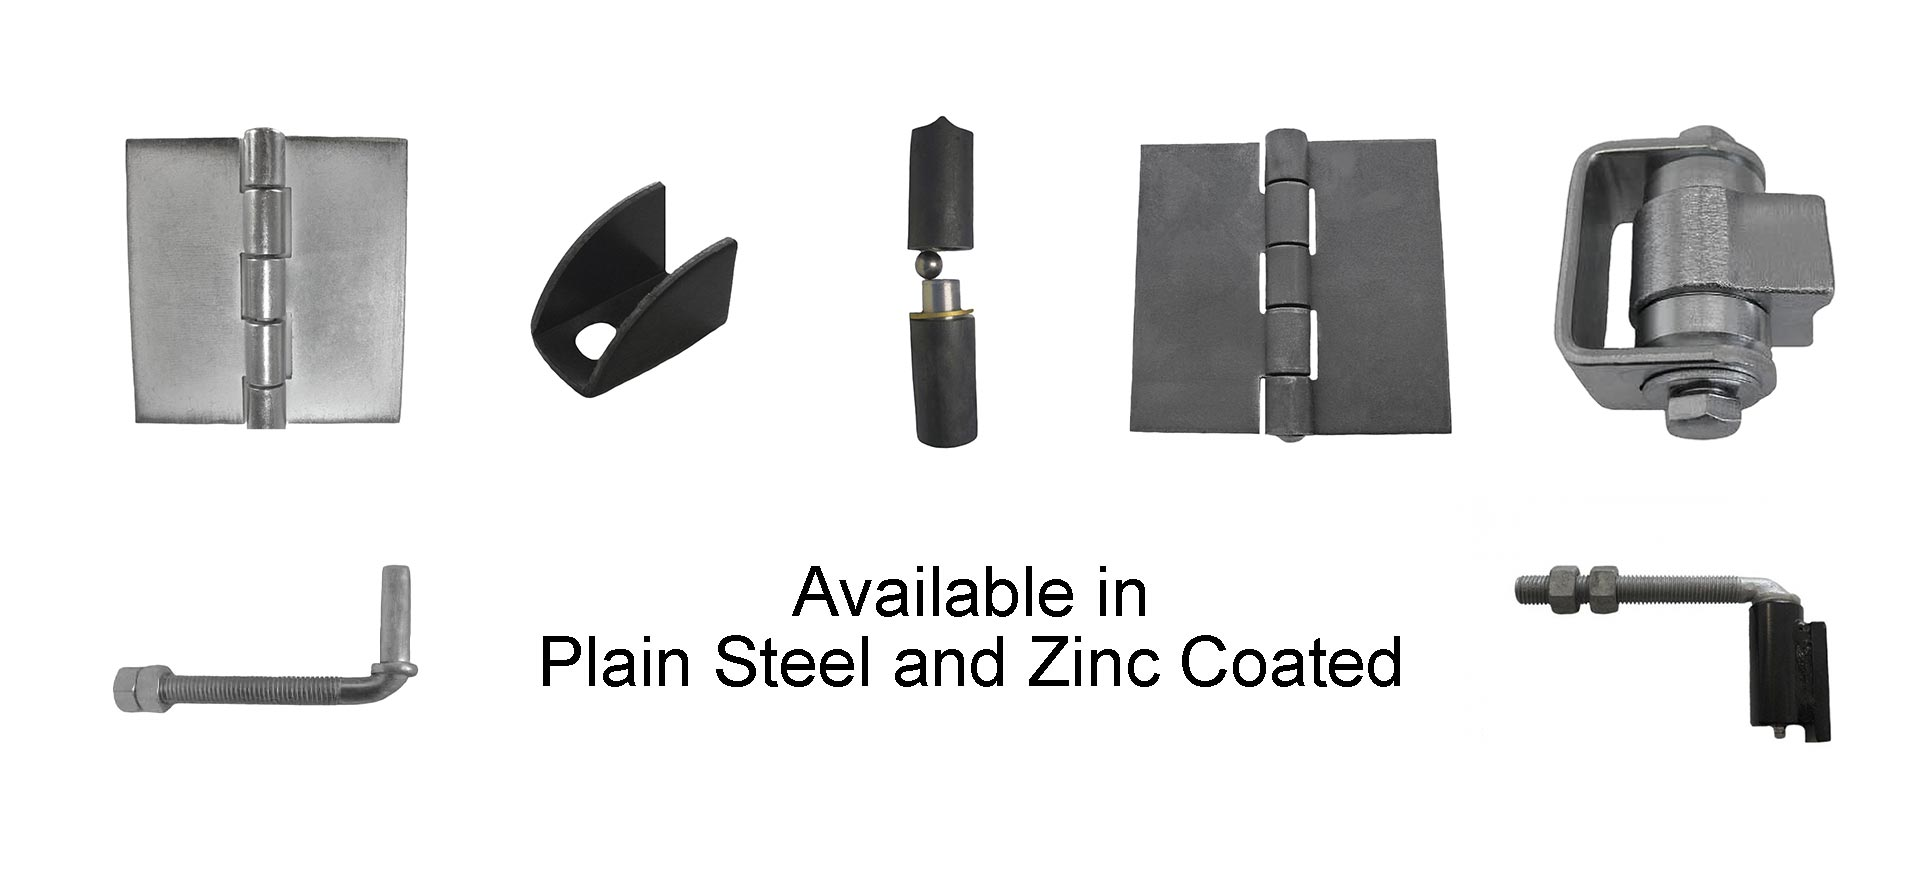 Barrel, Batwing, Butt, Heavy Duty, Zinc Plated, Spring Hinges. Wide variety and Excellent Quality from Superior Ornamental Supply.